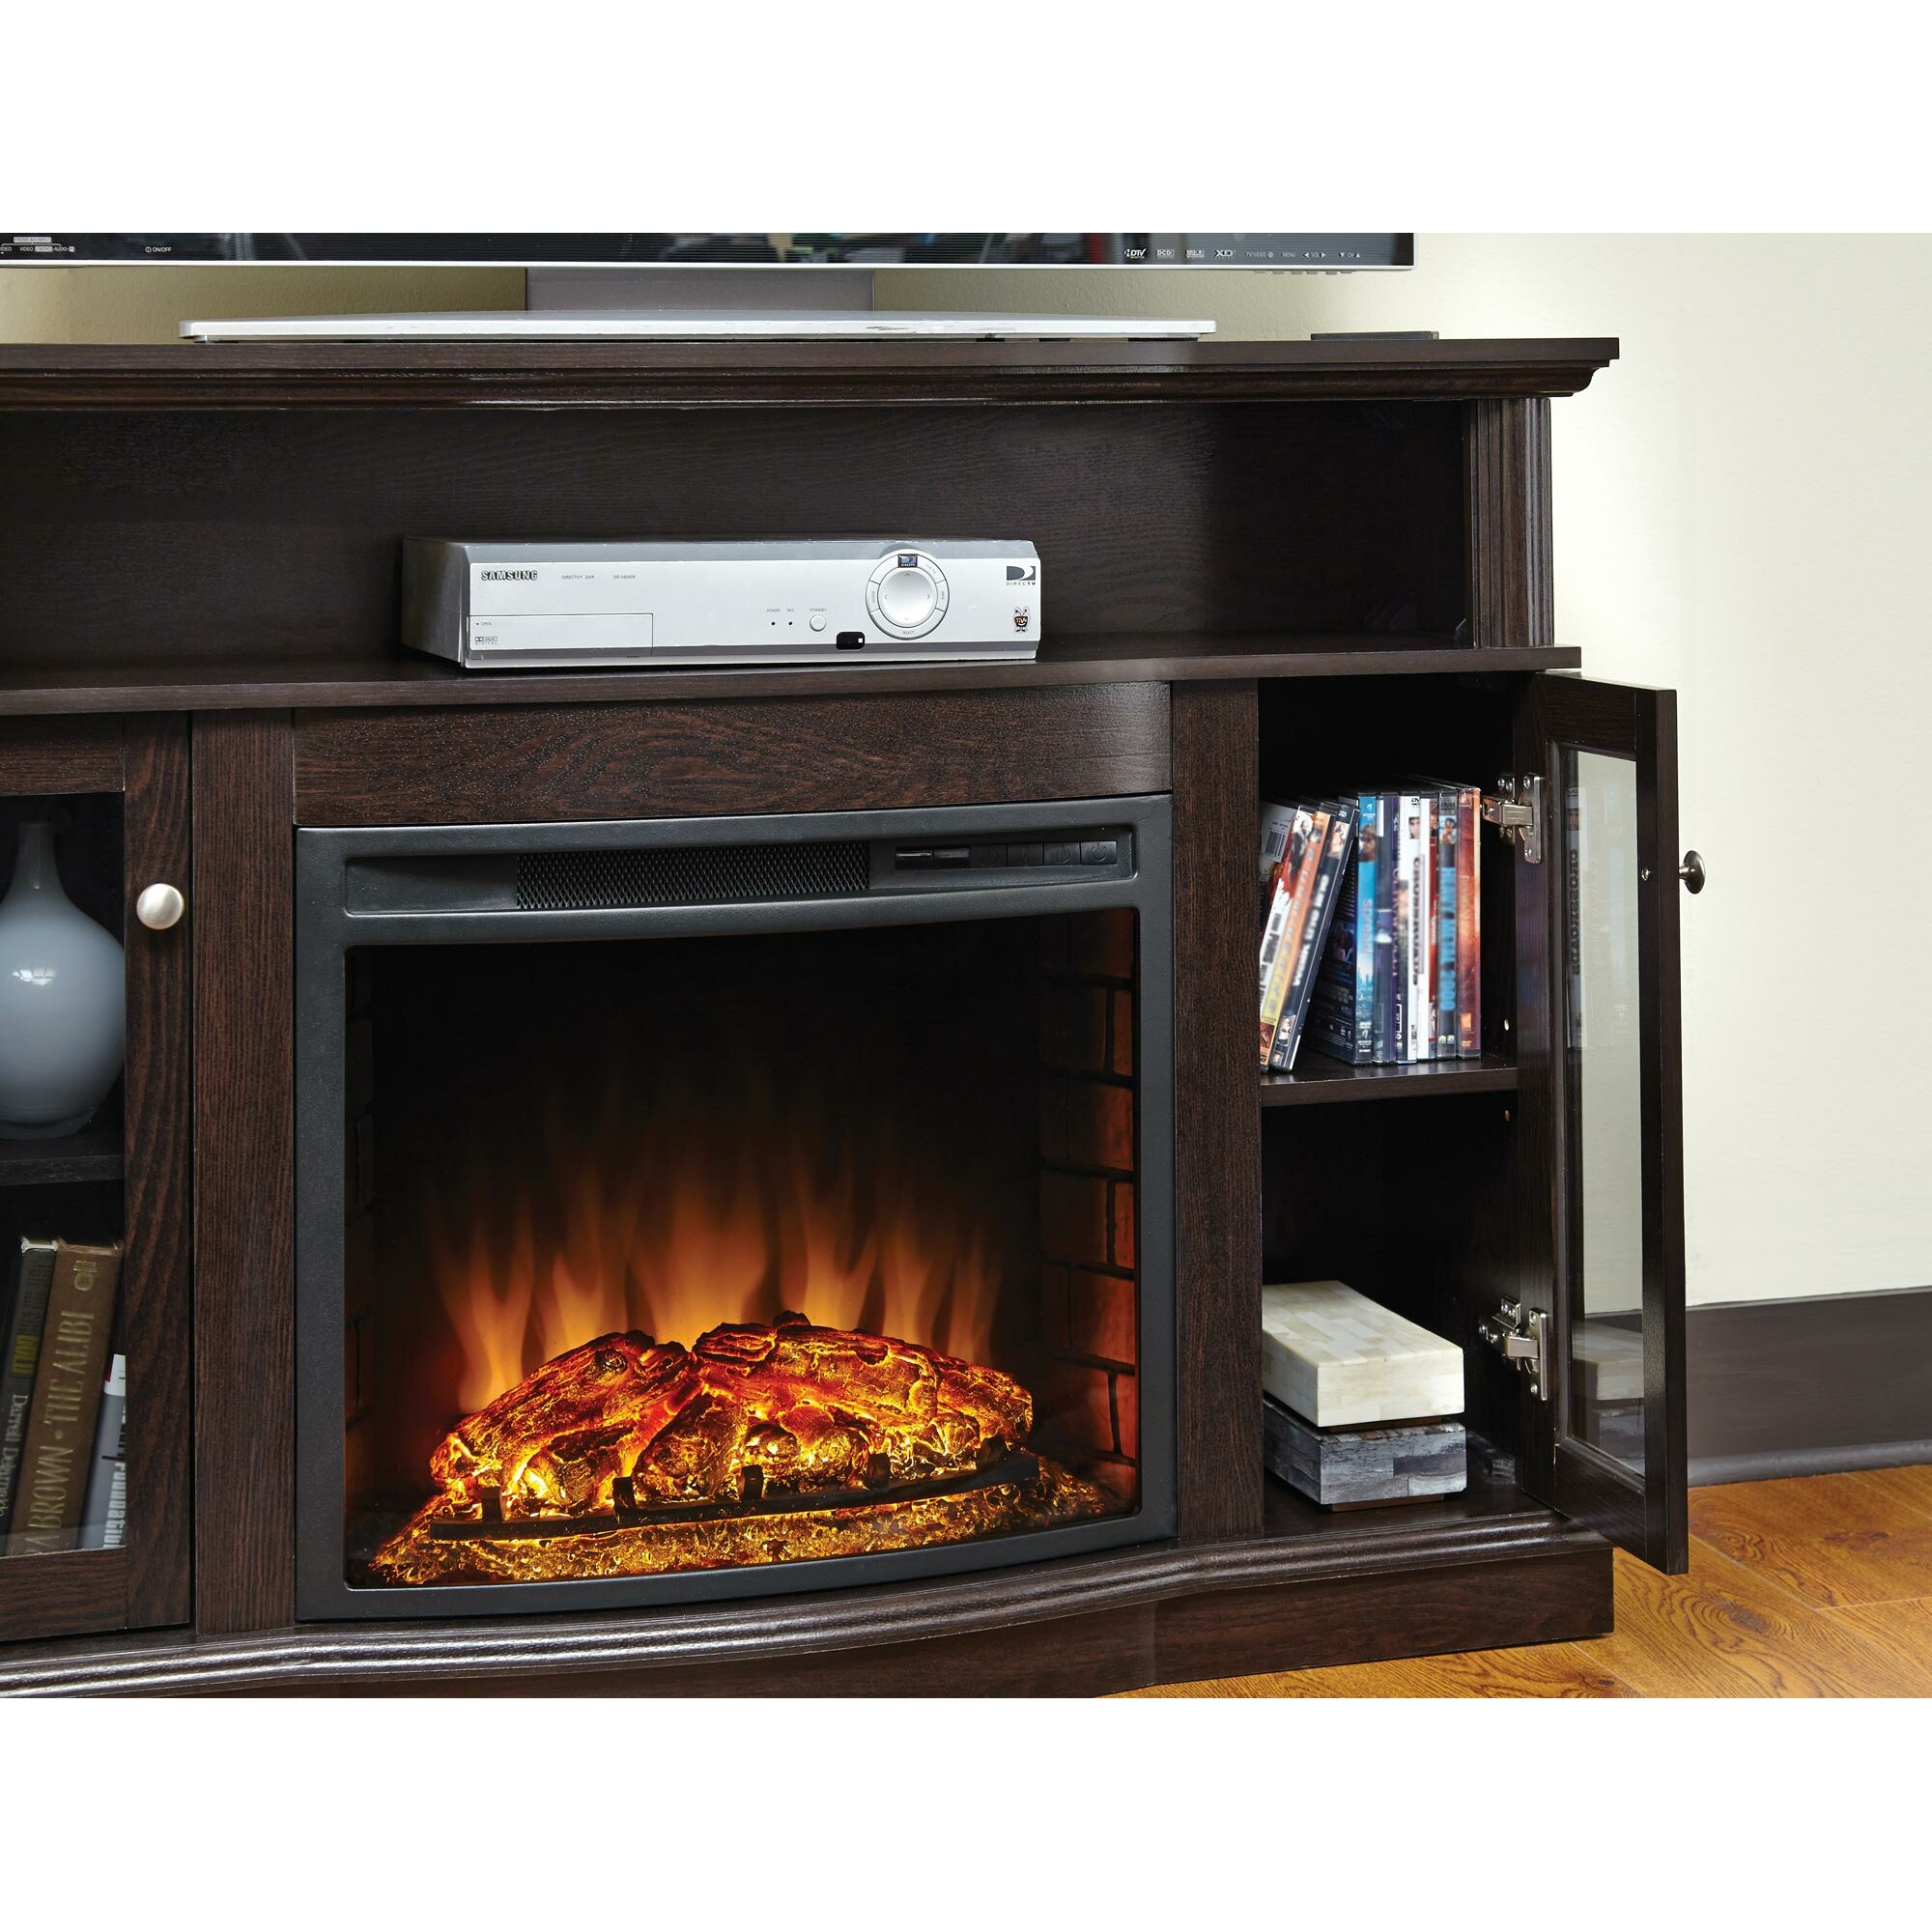 Fireplace Hearth: Pleasant Hearth Media Electric Fireplace & Reviews